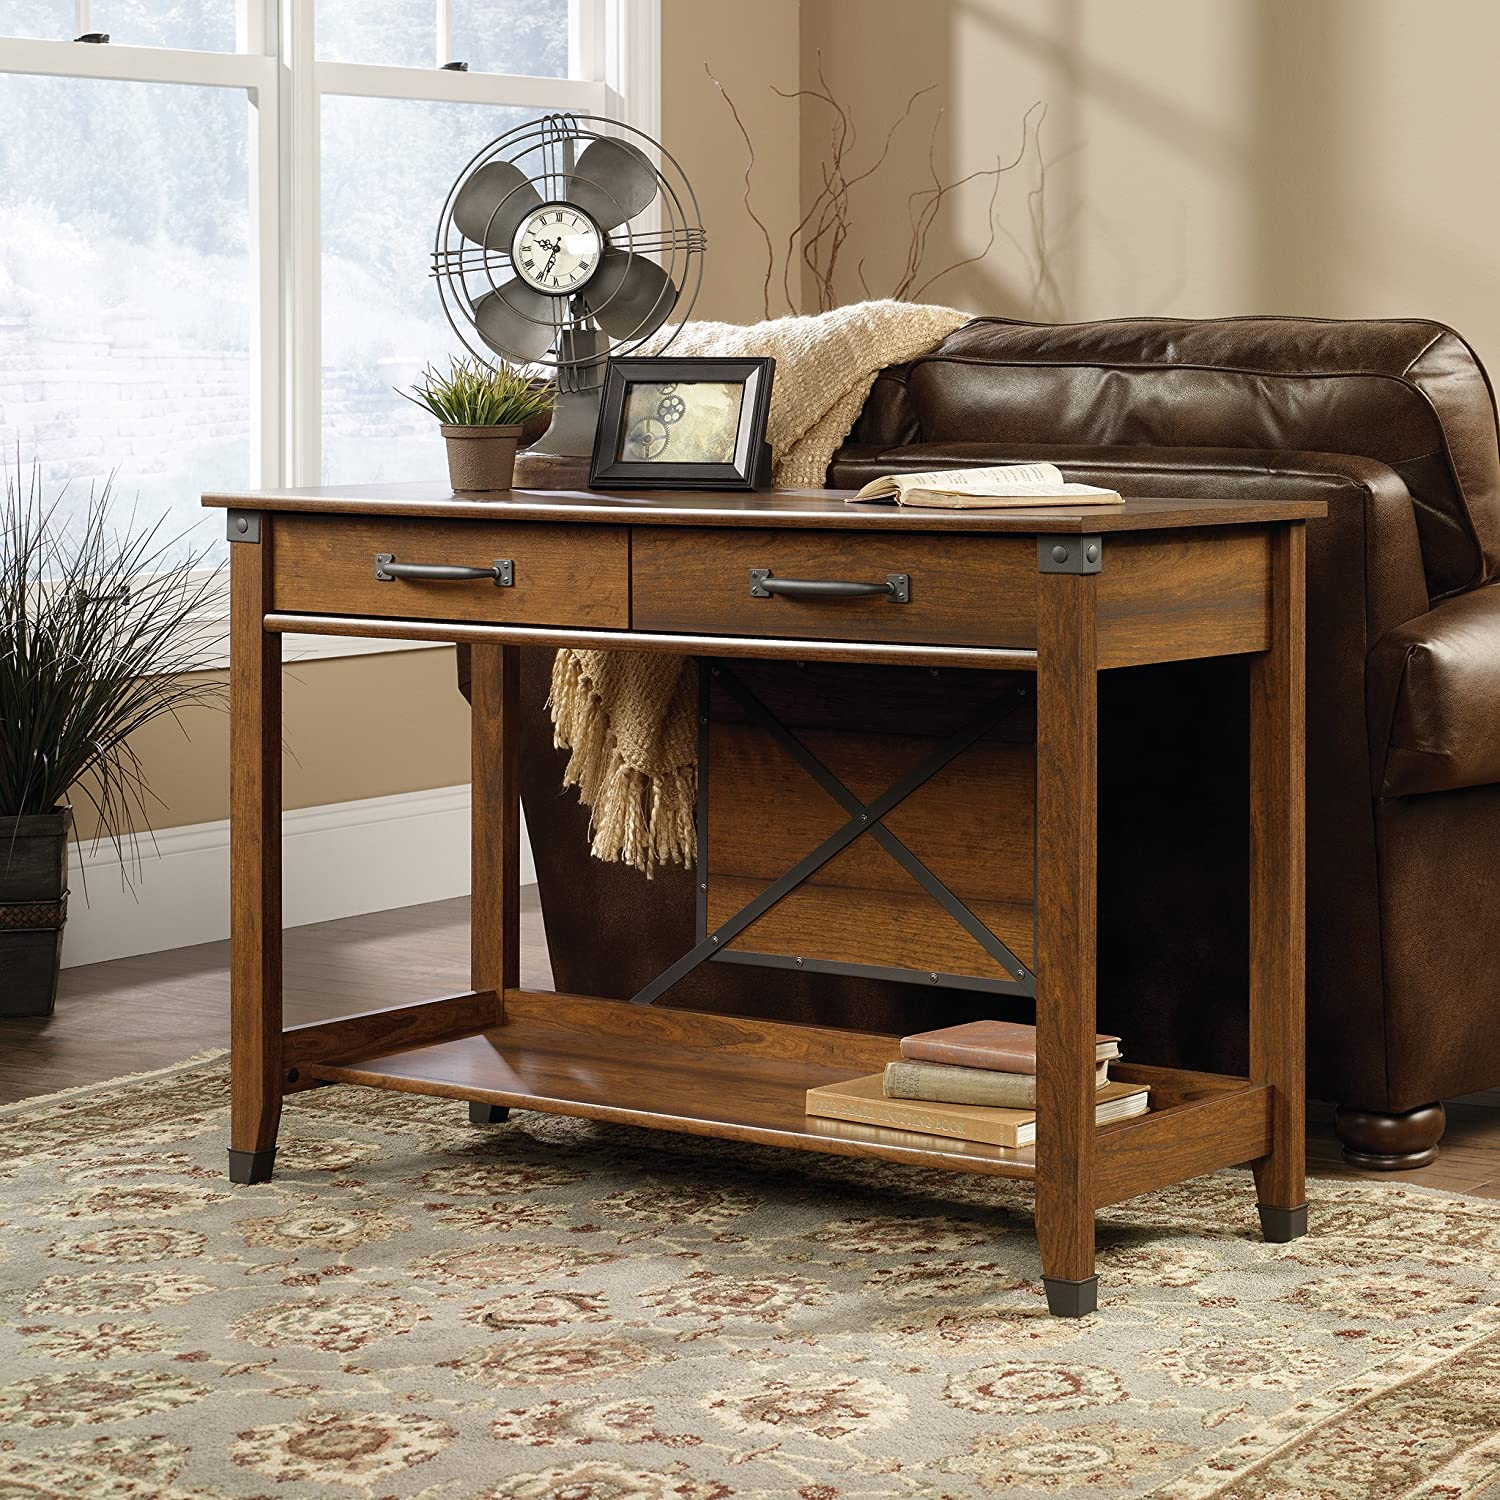 Amazon Sauder Carson Forge Sofa Table Washington Cherry